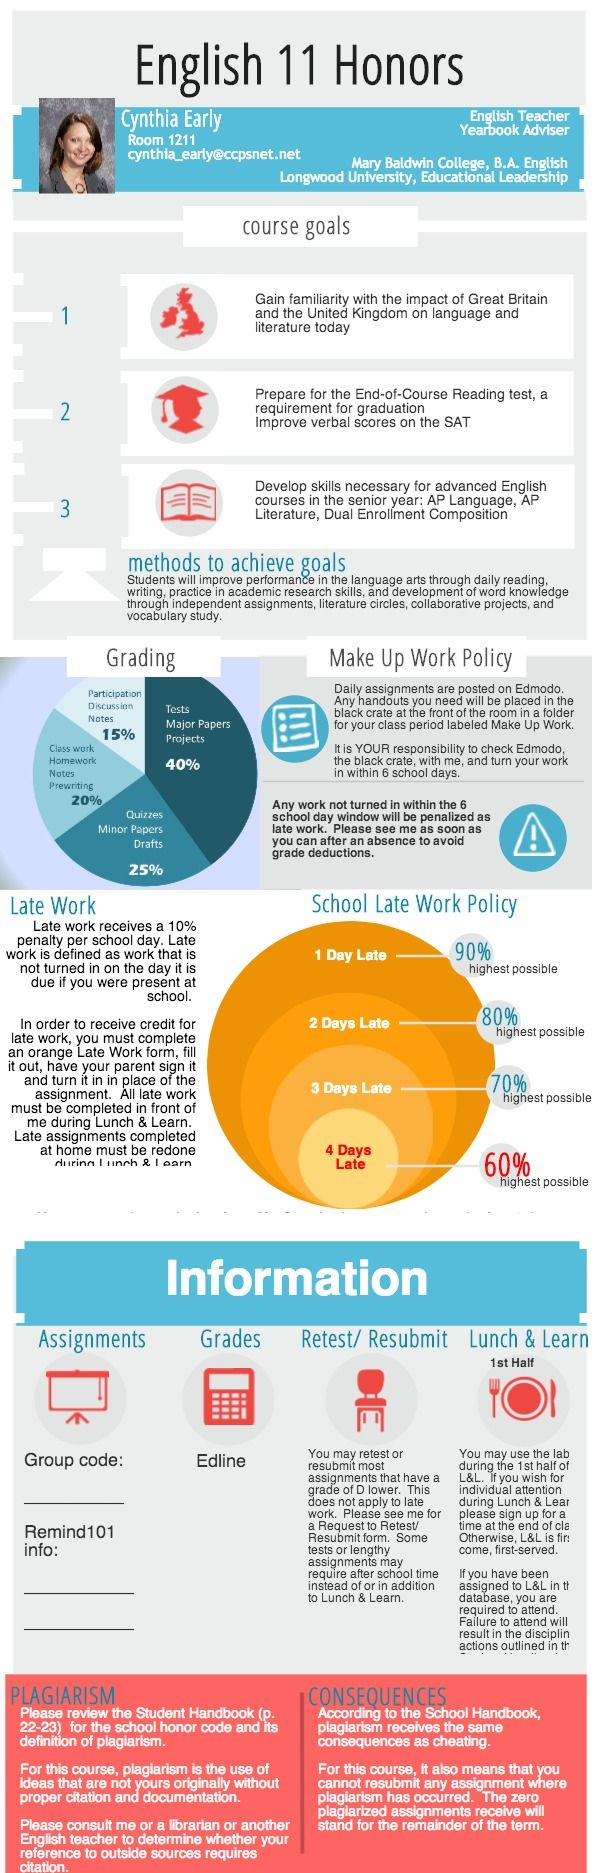 Syllabus Example Created In Free Piktochart Infographic Editor